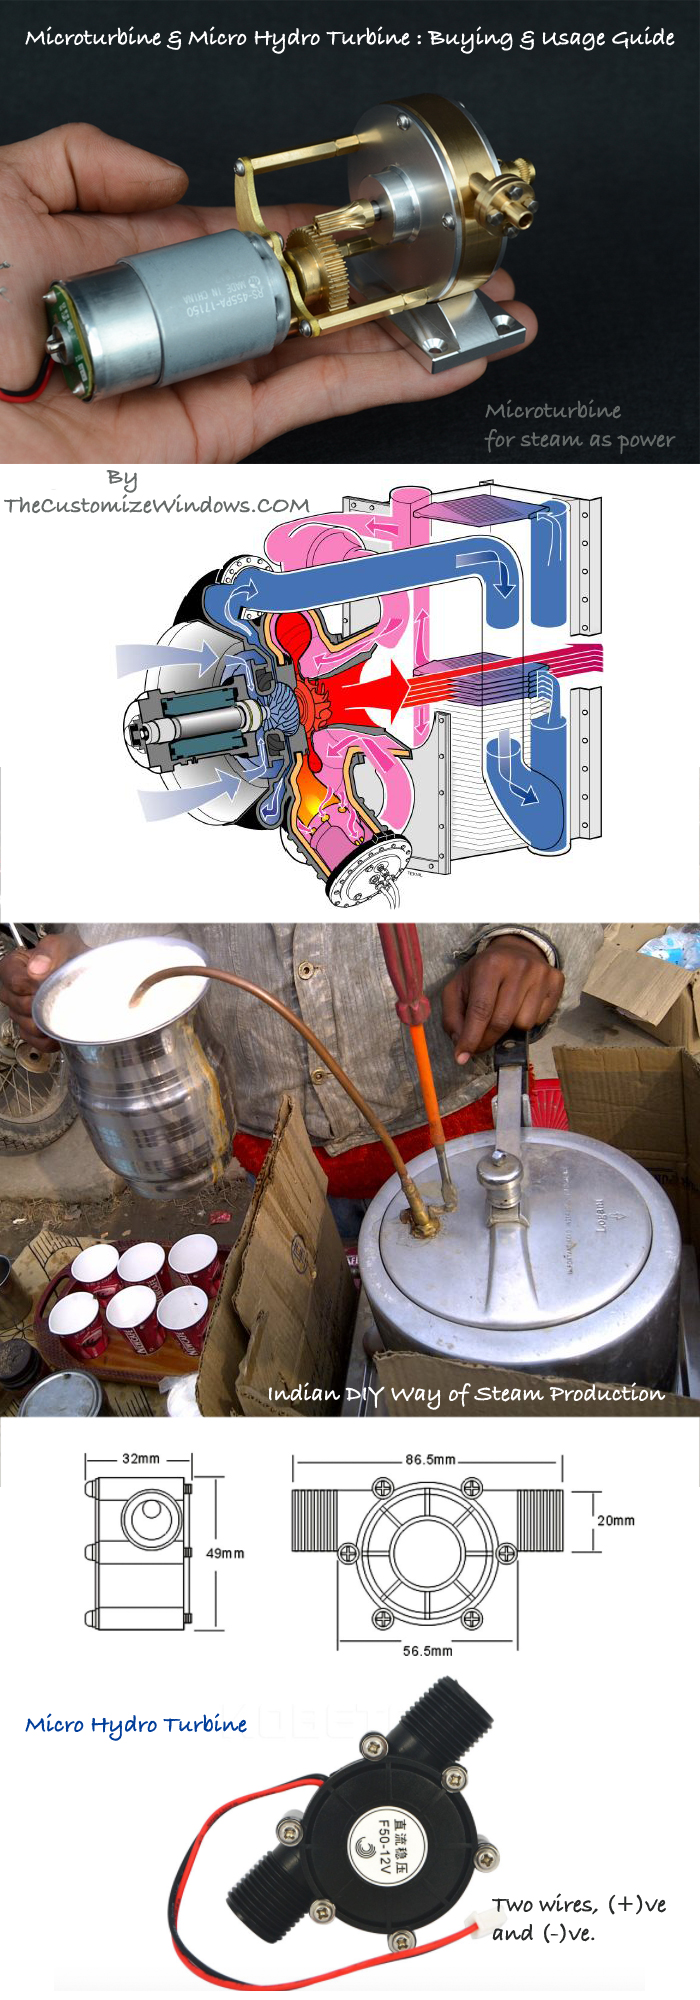 Microturbine-&-Micro-Hydro-Turbine---Buying-&-Usage-Guide